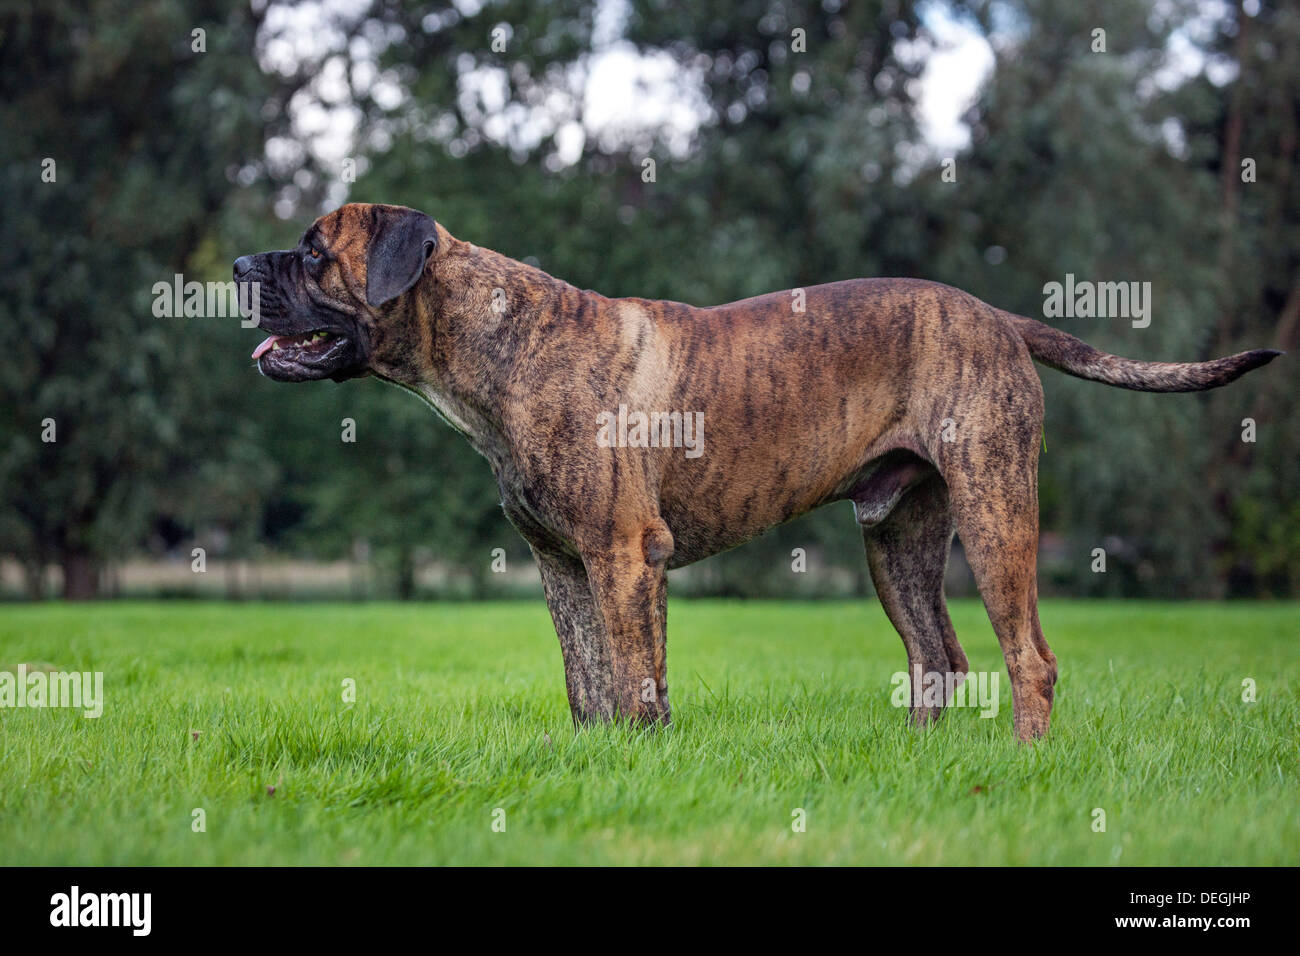 Boerboel, mastiff dog breed from South Africa in garden Stock Photo